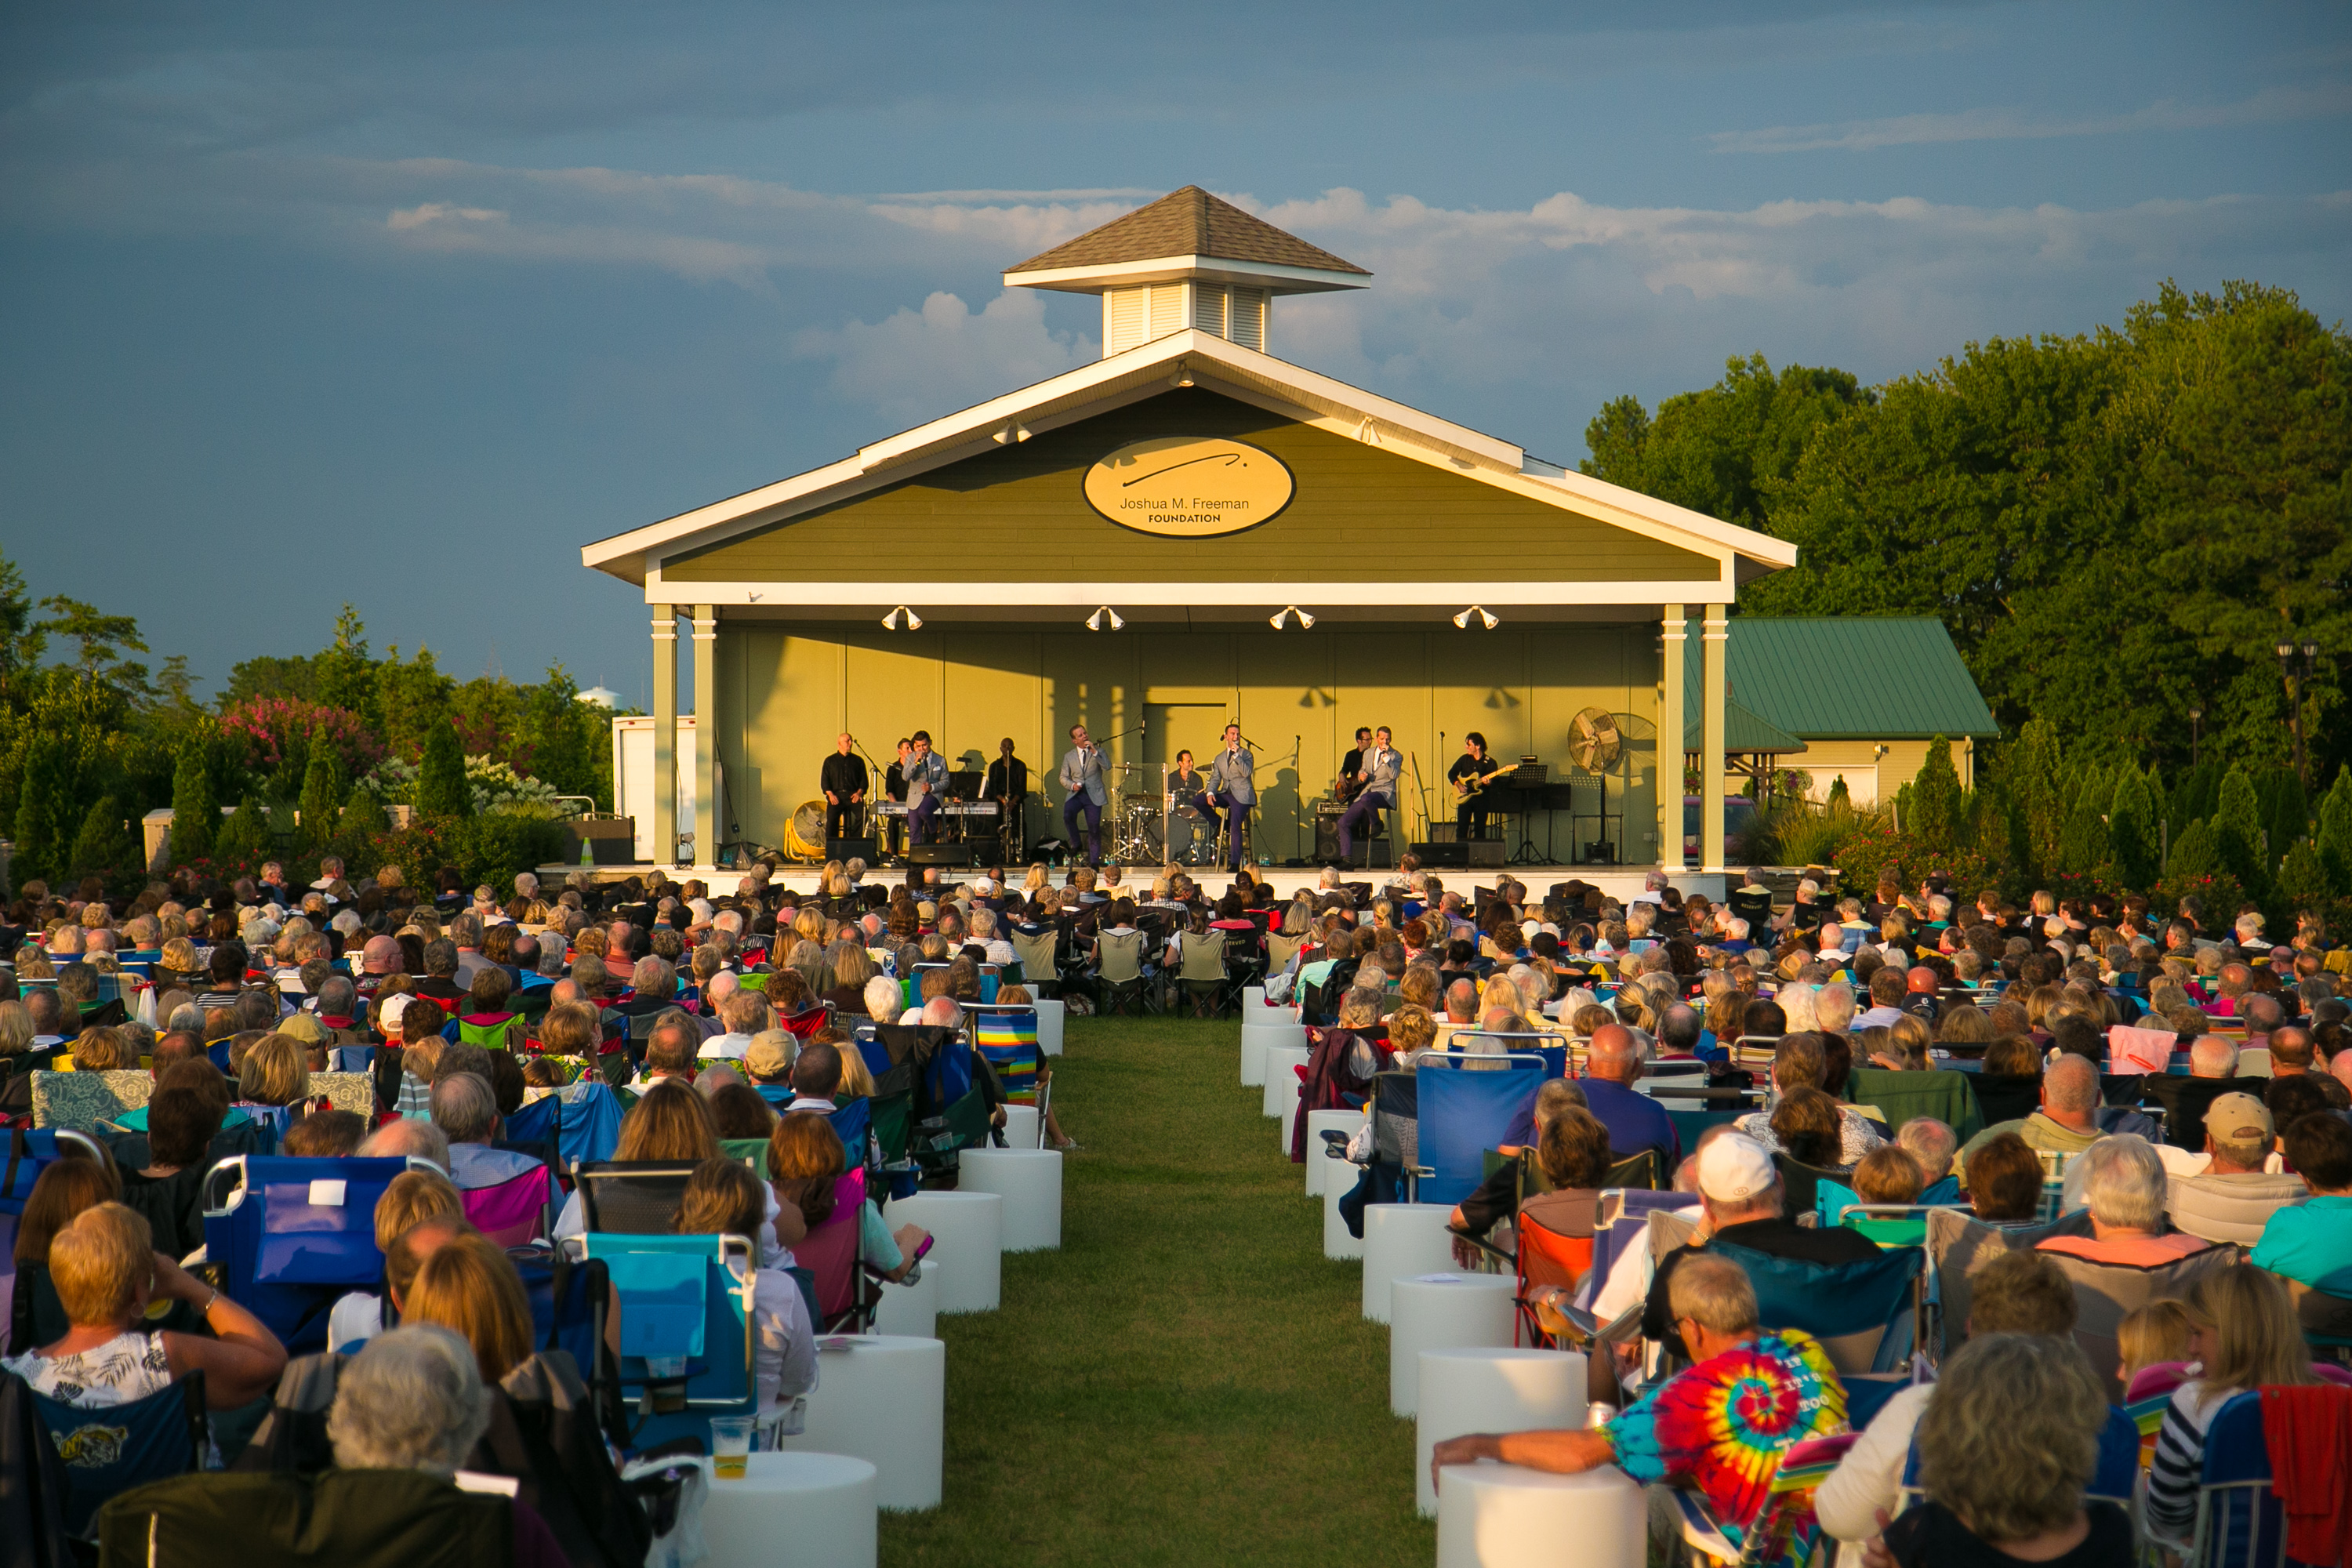 Enjoy some live music at the Freeman Stage (hosting Bruce Hornsby, Boyz II Men and Pat Benatar) in nearby Selbyville.{ }(Image: Courtesy VisitDelaware.com)